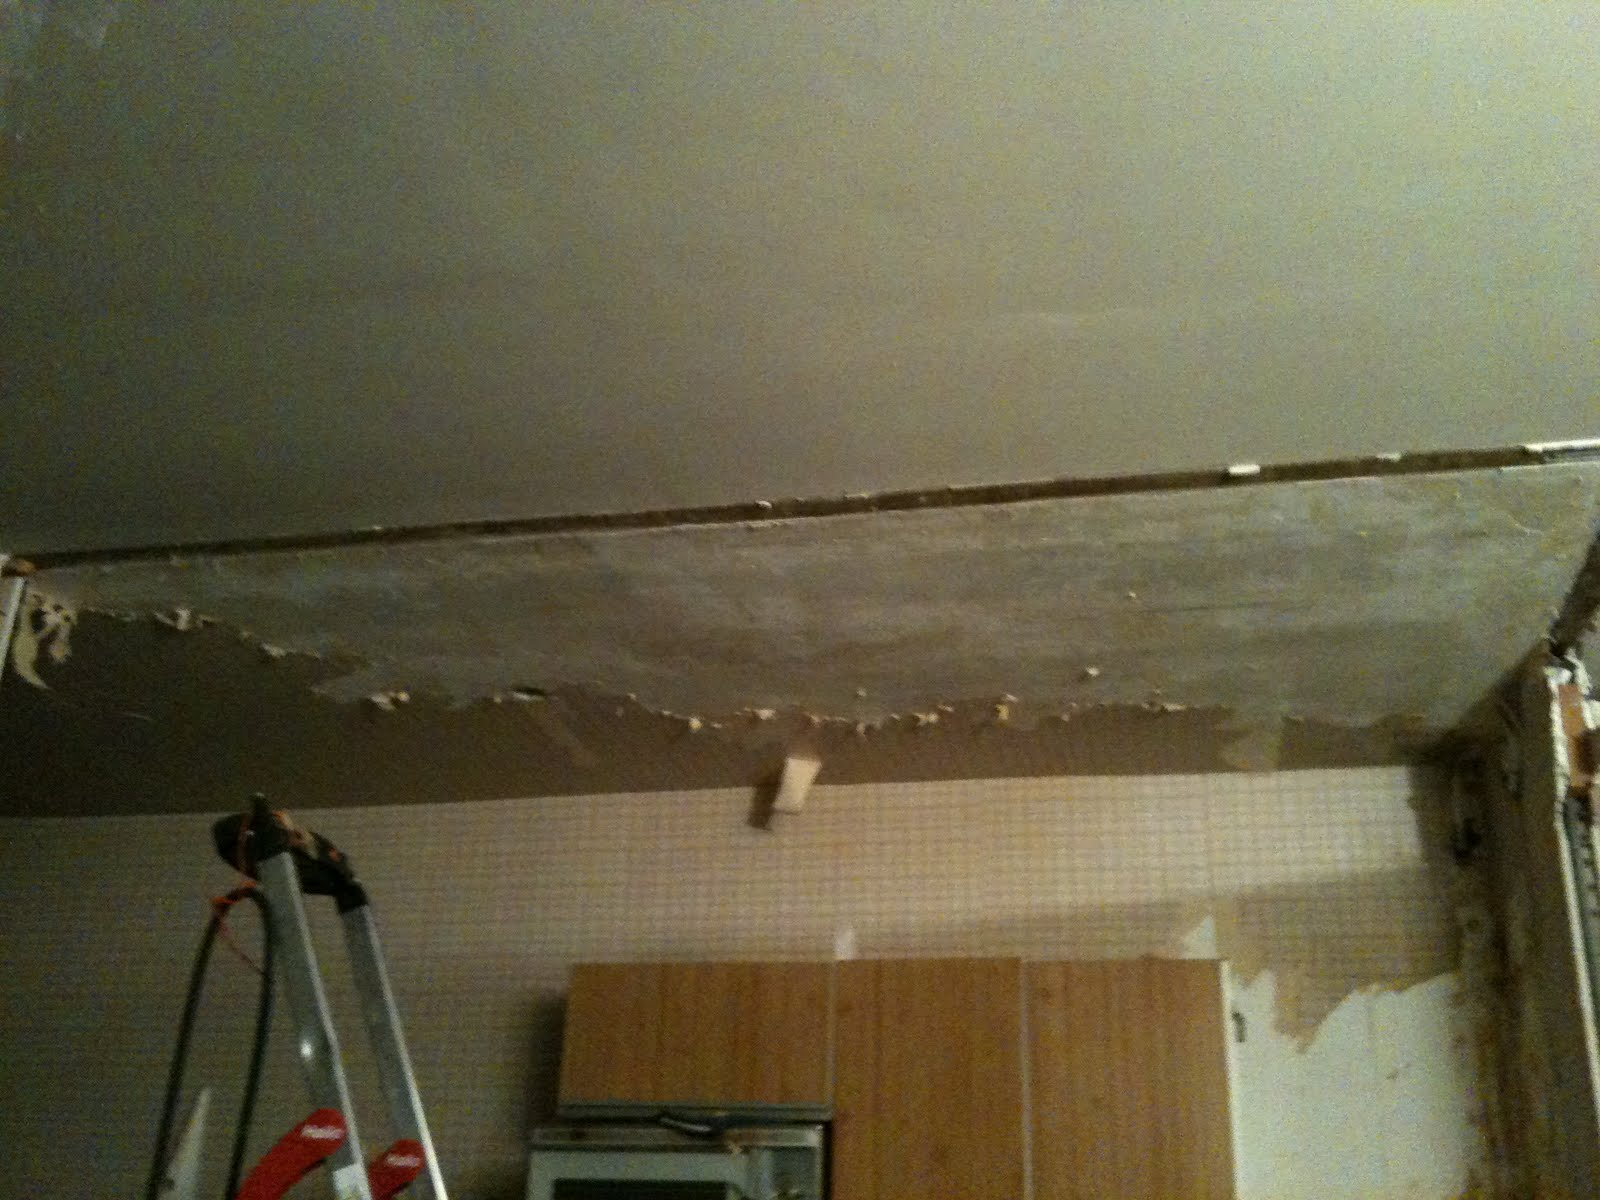 Design my flat refaire le plafond mauvaise id e for Faire un plafond